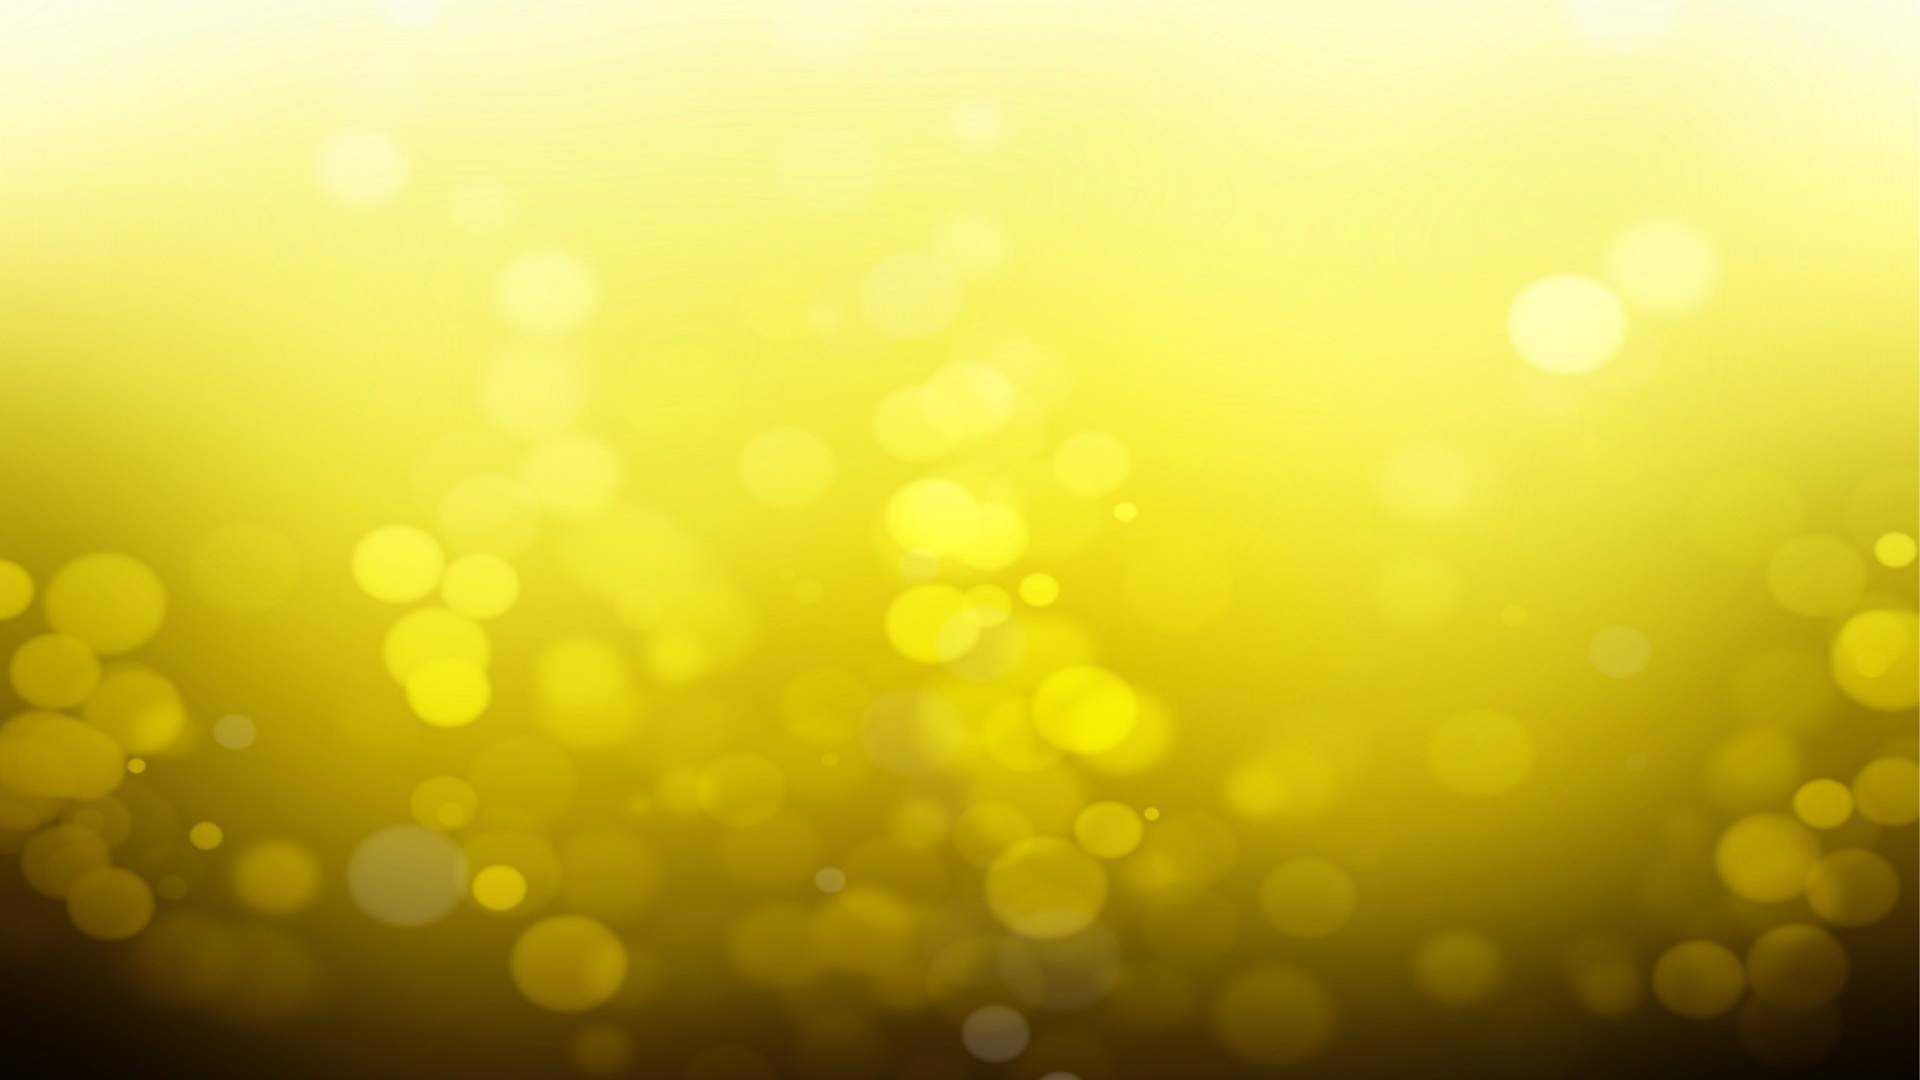 Download These 42 Yellow Wallpapers in High Definition For 1920x1080